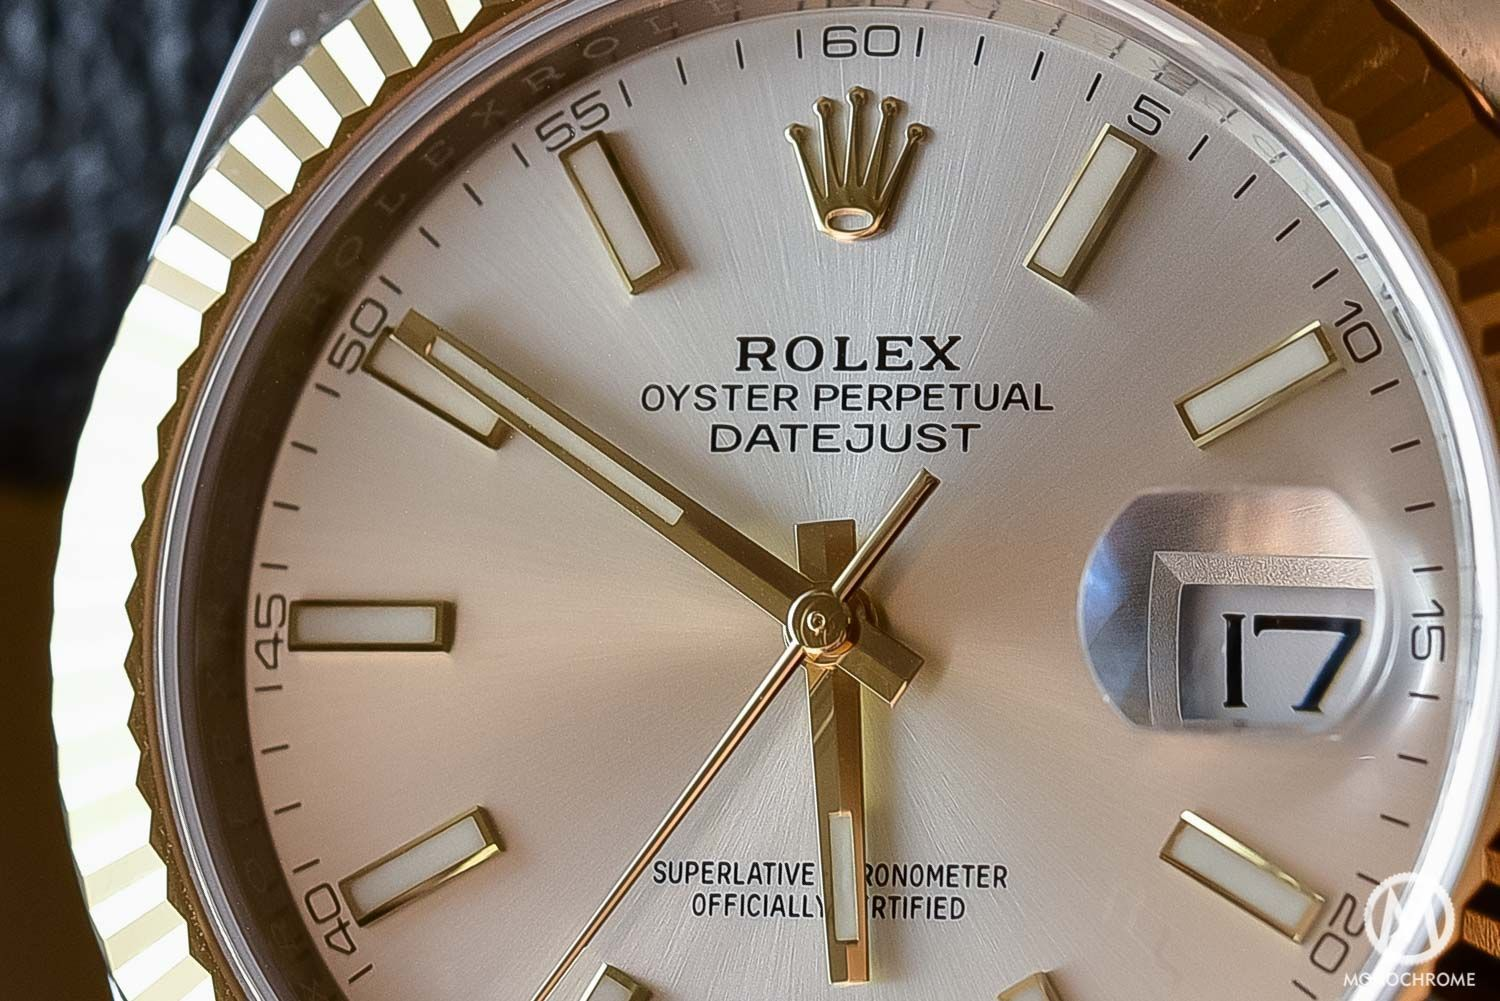 Full Review - The new Rolex Datejust 41 from Baselworld 2016, with new case, new 3235 movement and comeback of the Jubilee (live pics & price #monochromewatches Full Review - The new Rolex Datejust 41 from Baselworld 2016, with new case, new 3235 movement and comeback of the Jubilee (live pics & price) - Monochrome Watches #monochromewatches Full Review - The new Rolex Datejust 41 from Baselworld 2016, with new case, new 3235 movement and comeback of the Jubilee (live pics & price #monochromewat #monochromewatches